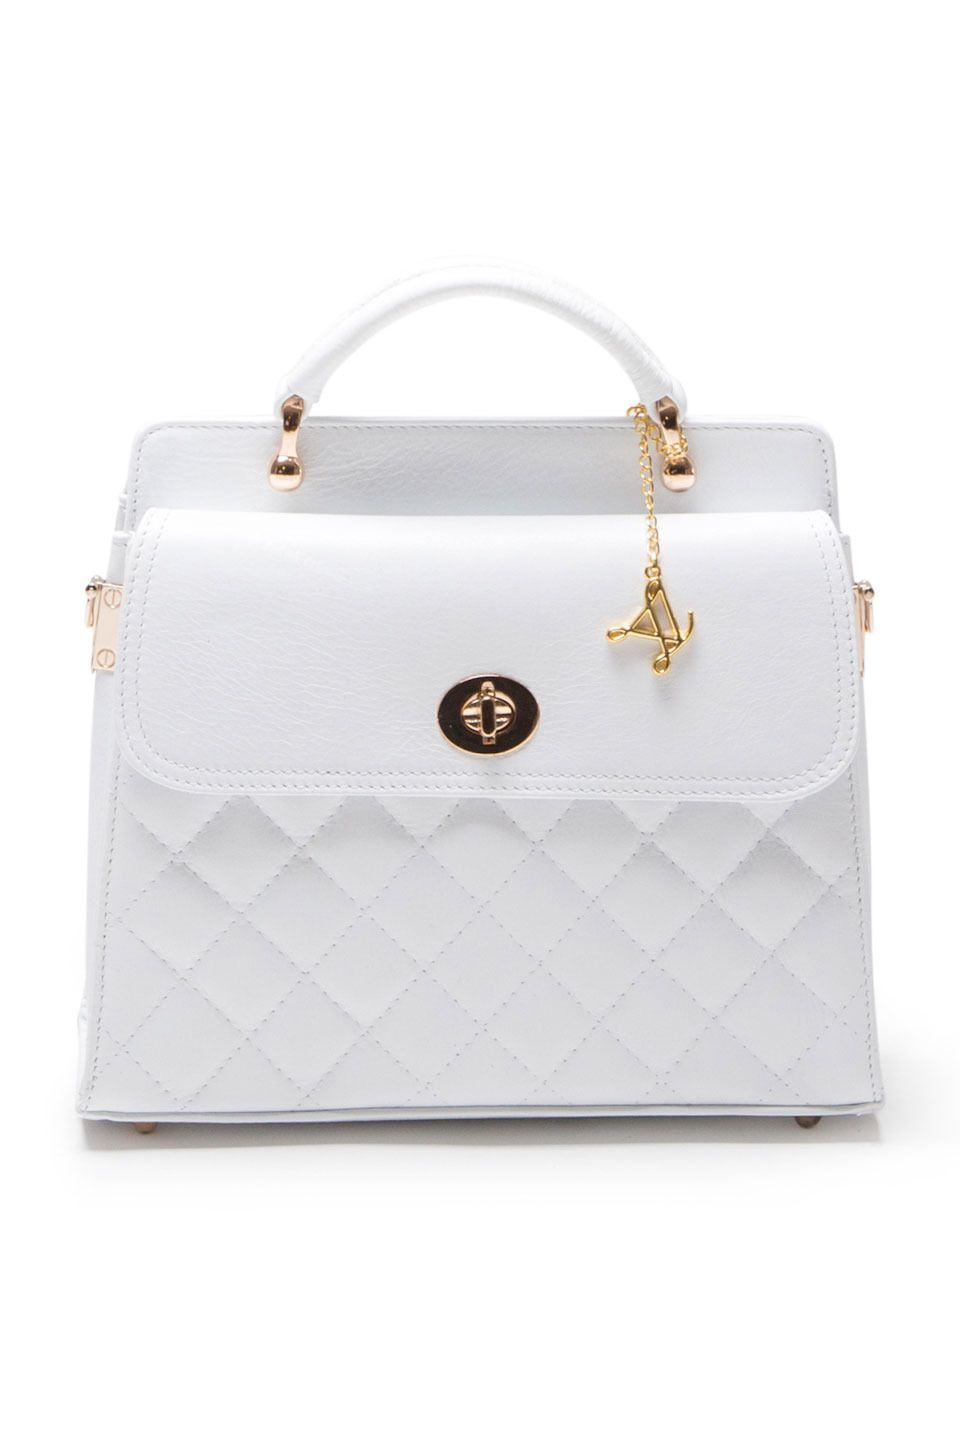 5d45ab0f54bd Luisa Vannini - Front Flap Shoulder Bag in White | TASKER OG PUNGE 2 ...